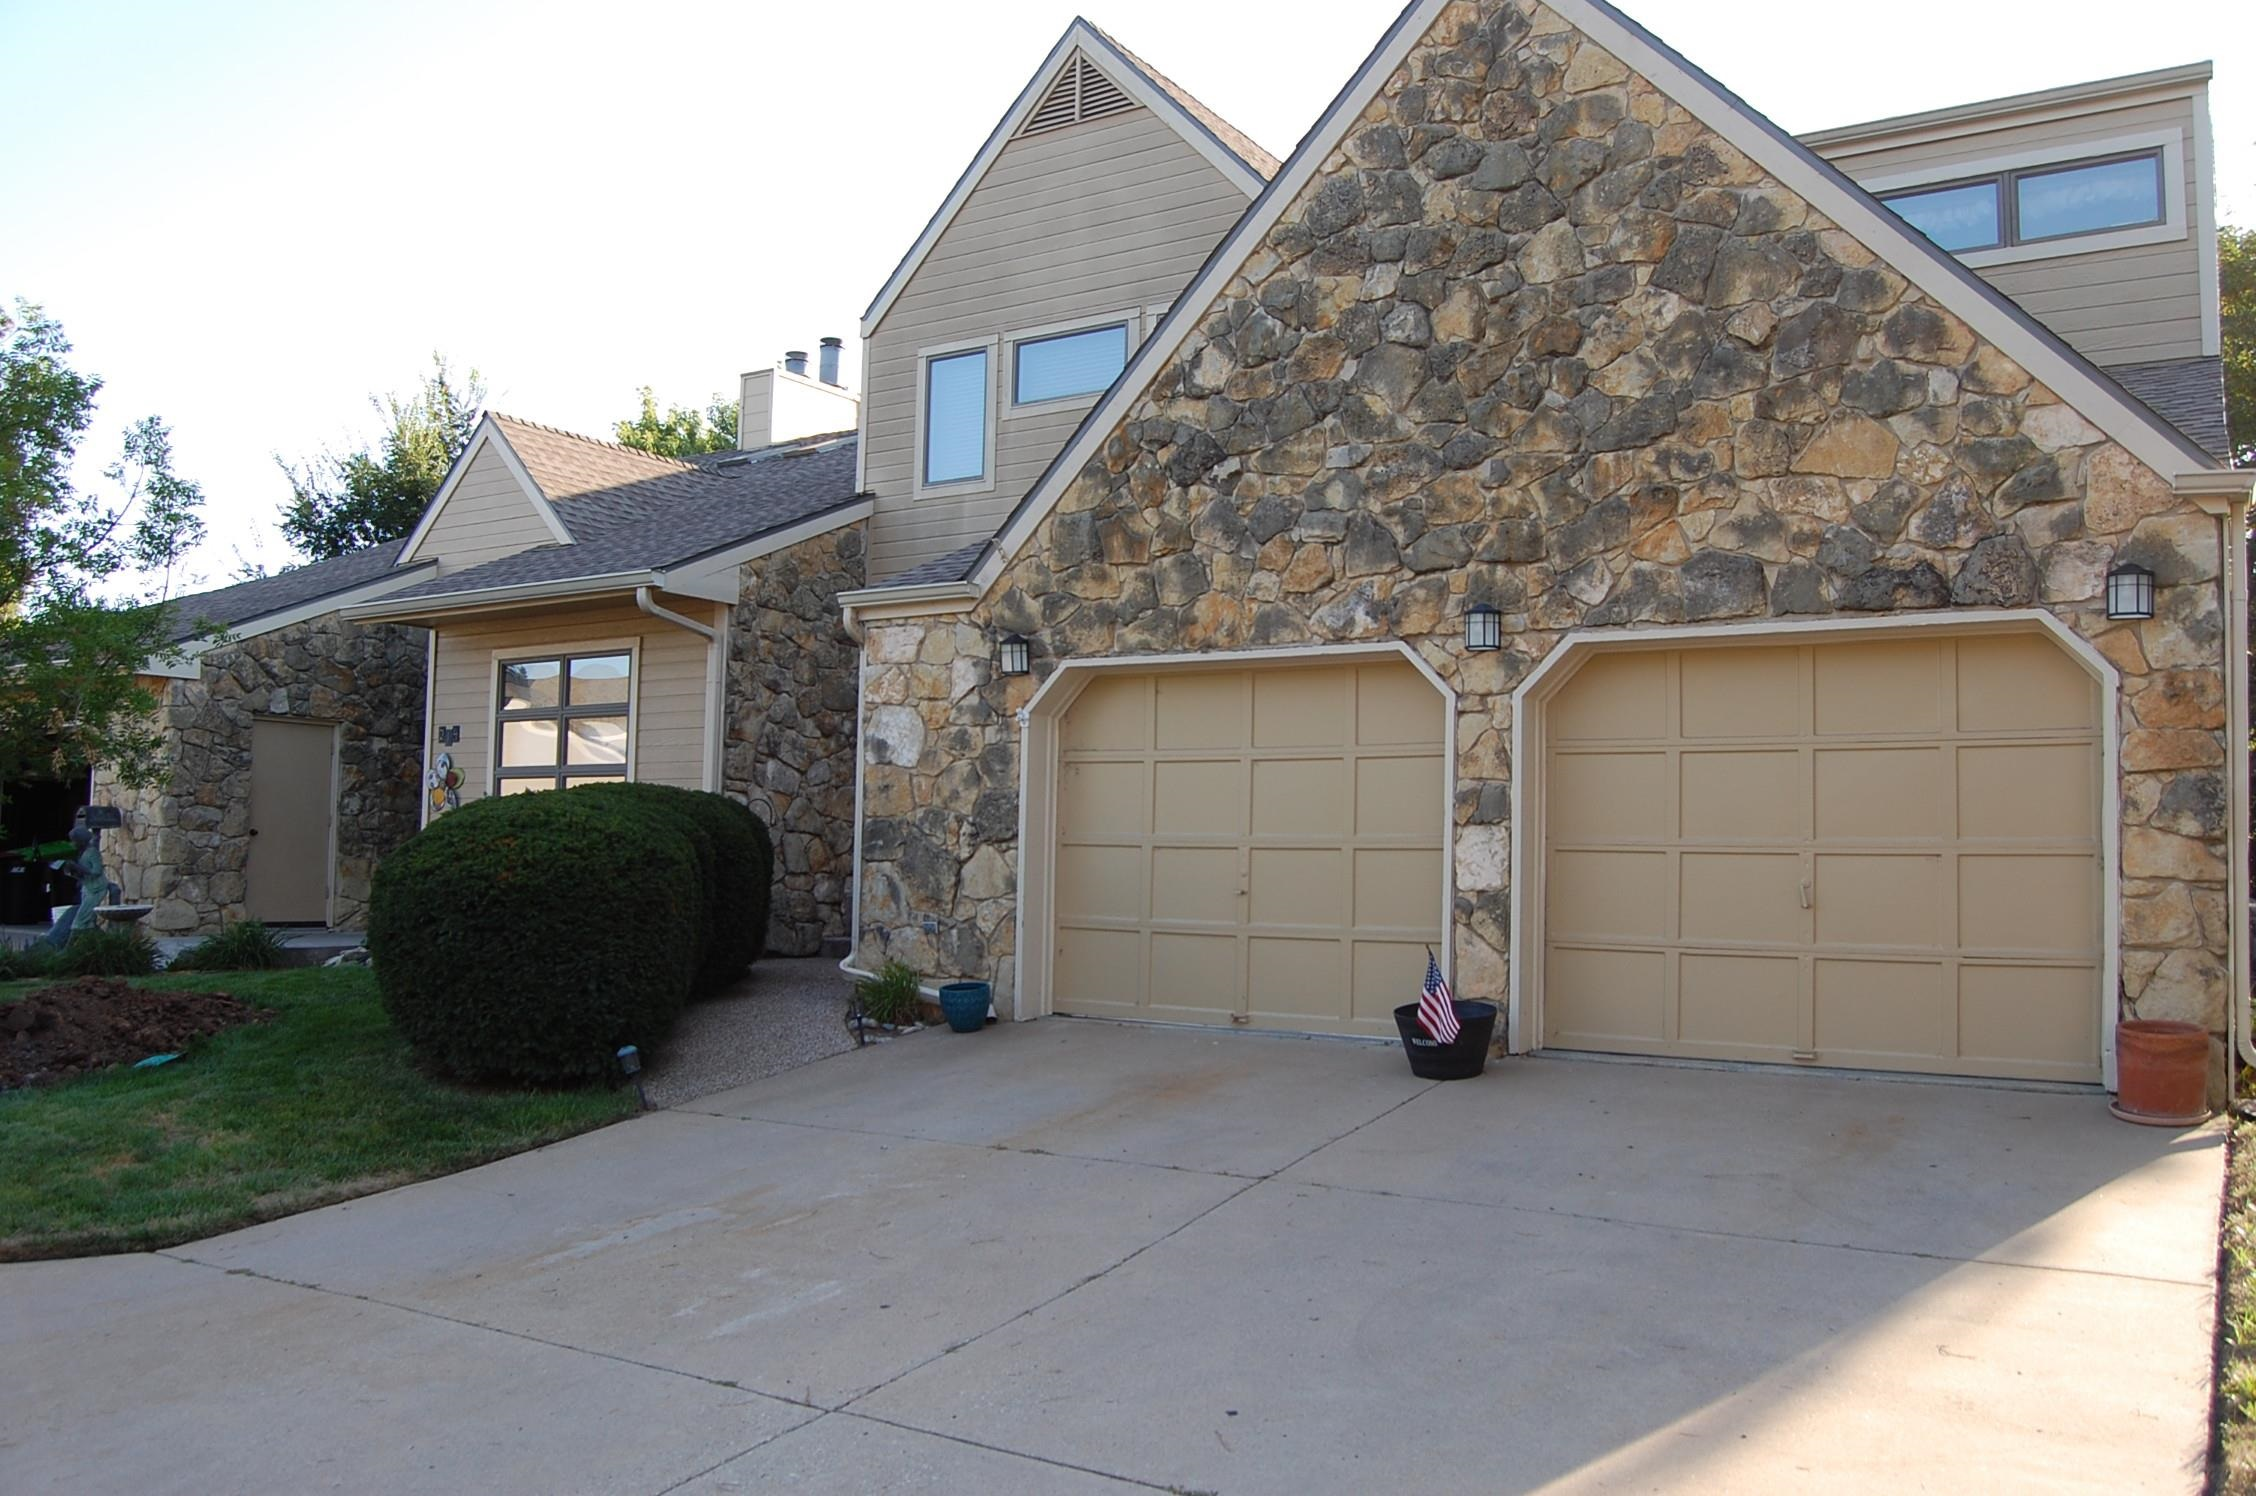 Wonderful Patio home in Timber Grove Lakes. Gated area. Very spacious, 3 bedroom, 3 1/2 bath home. T